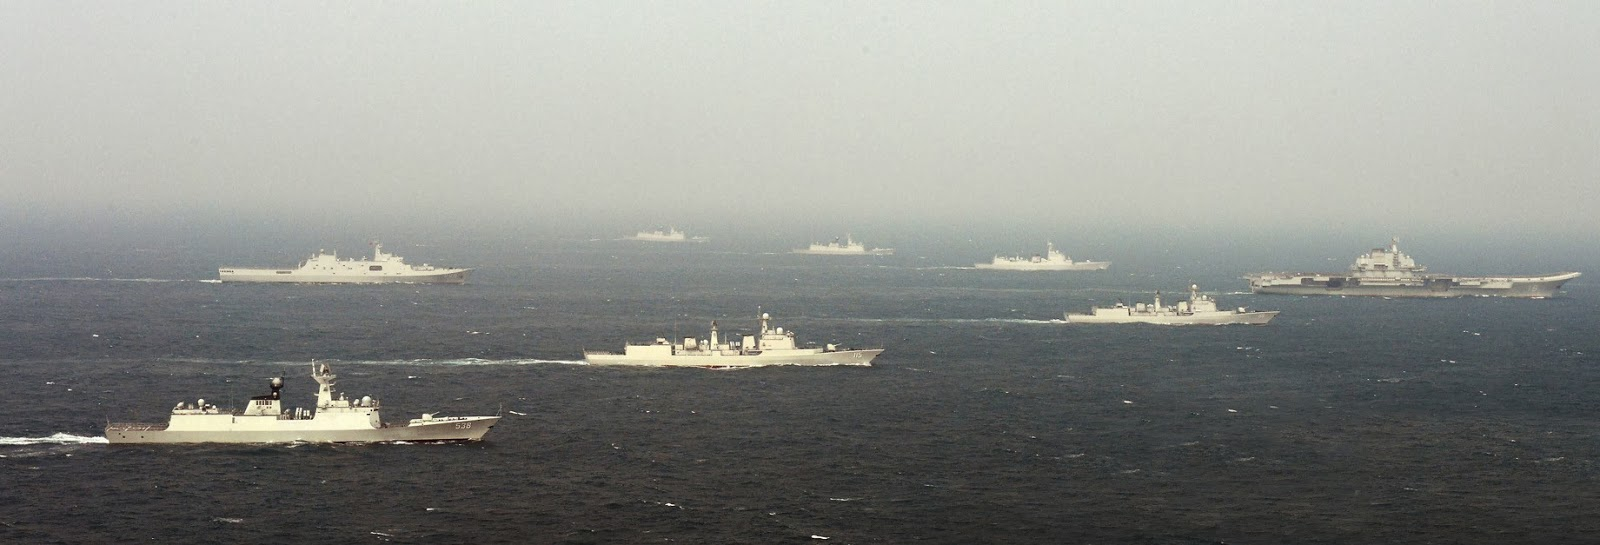 Chinese Carrier Battle Group (CVBG) FormationLiaoning escort group 4 incl. subs Type 052D Guided Missile Destroyer, Type 052C , Peoples Liberation Army Navy 5 Type 052C Type 052D destroyers (6)